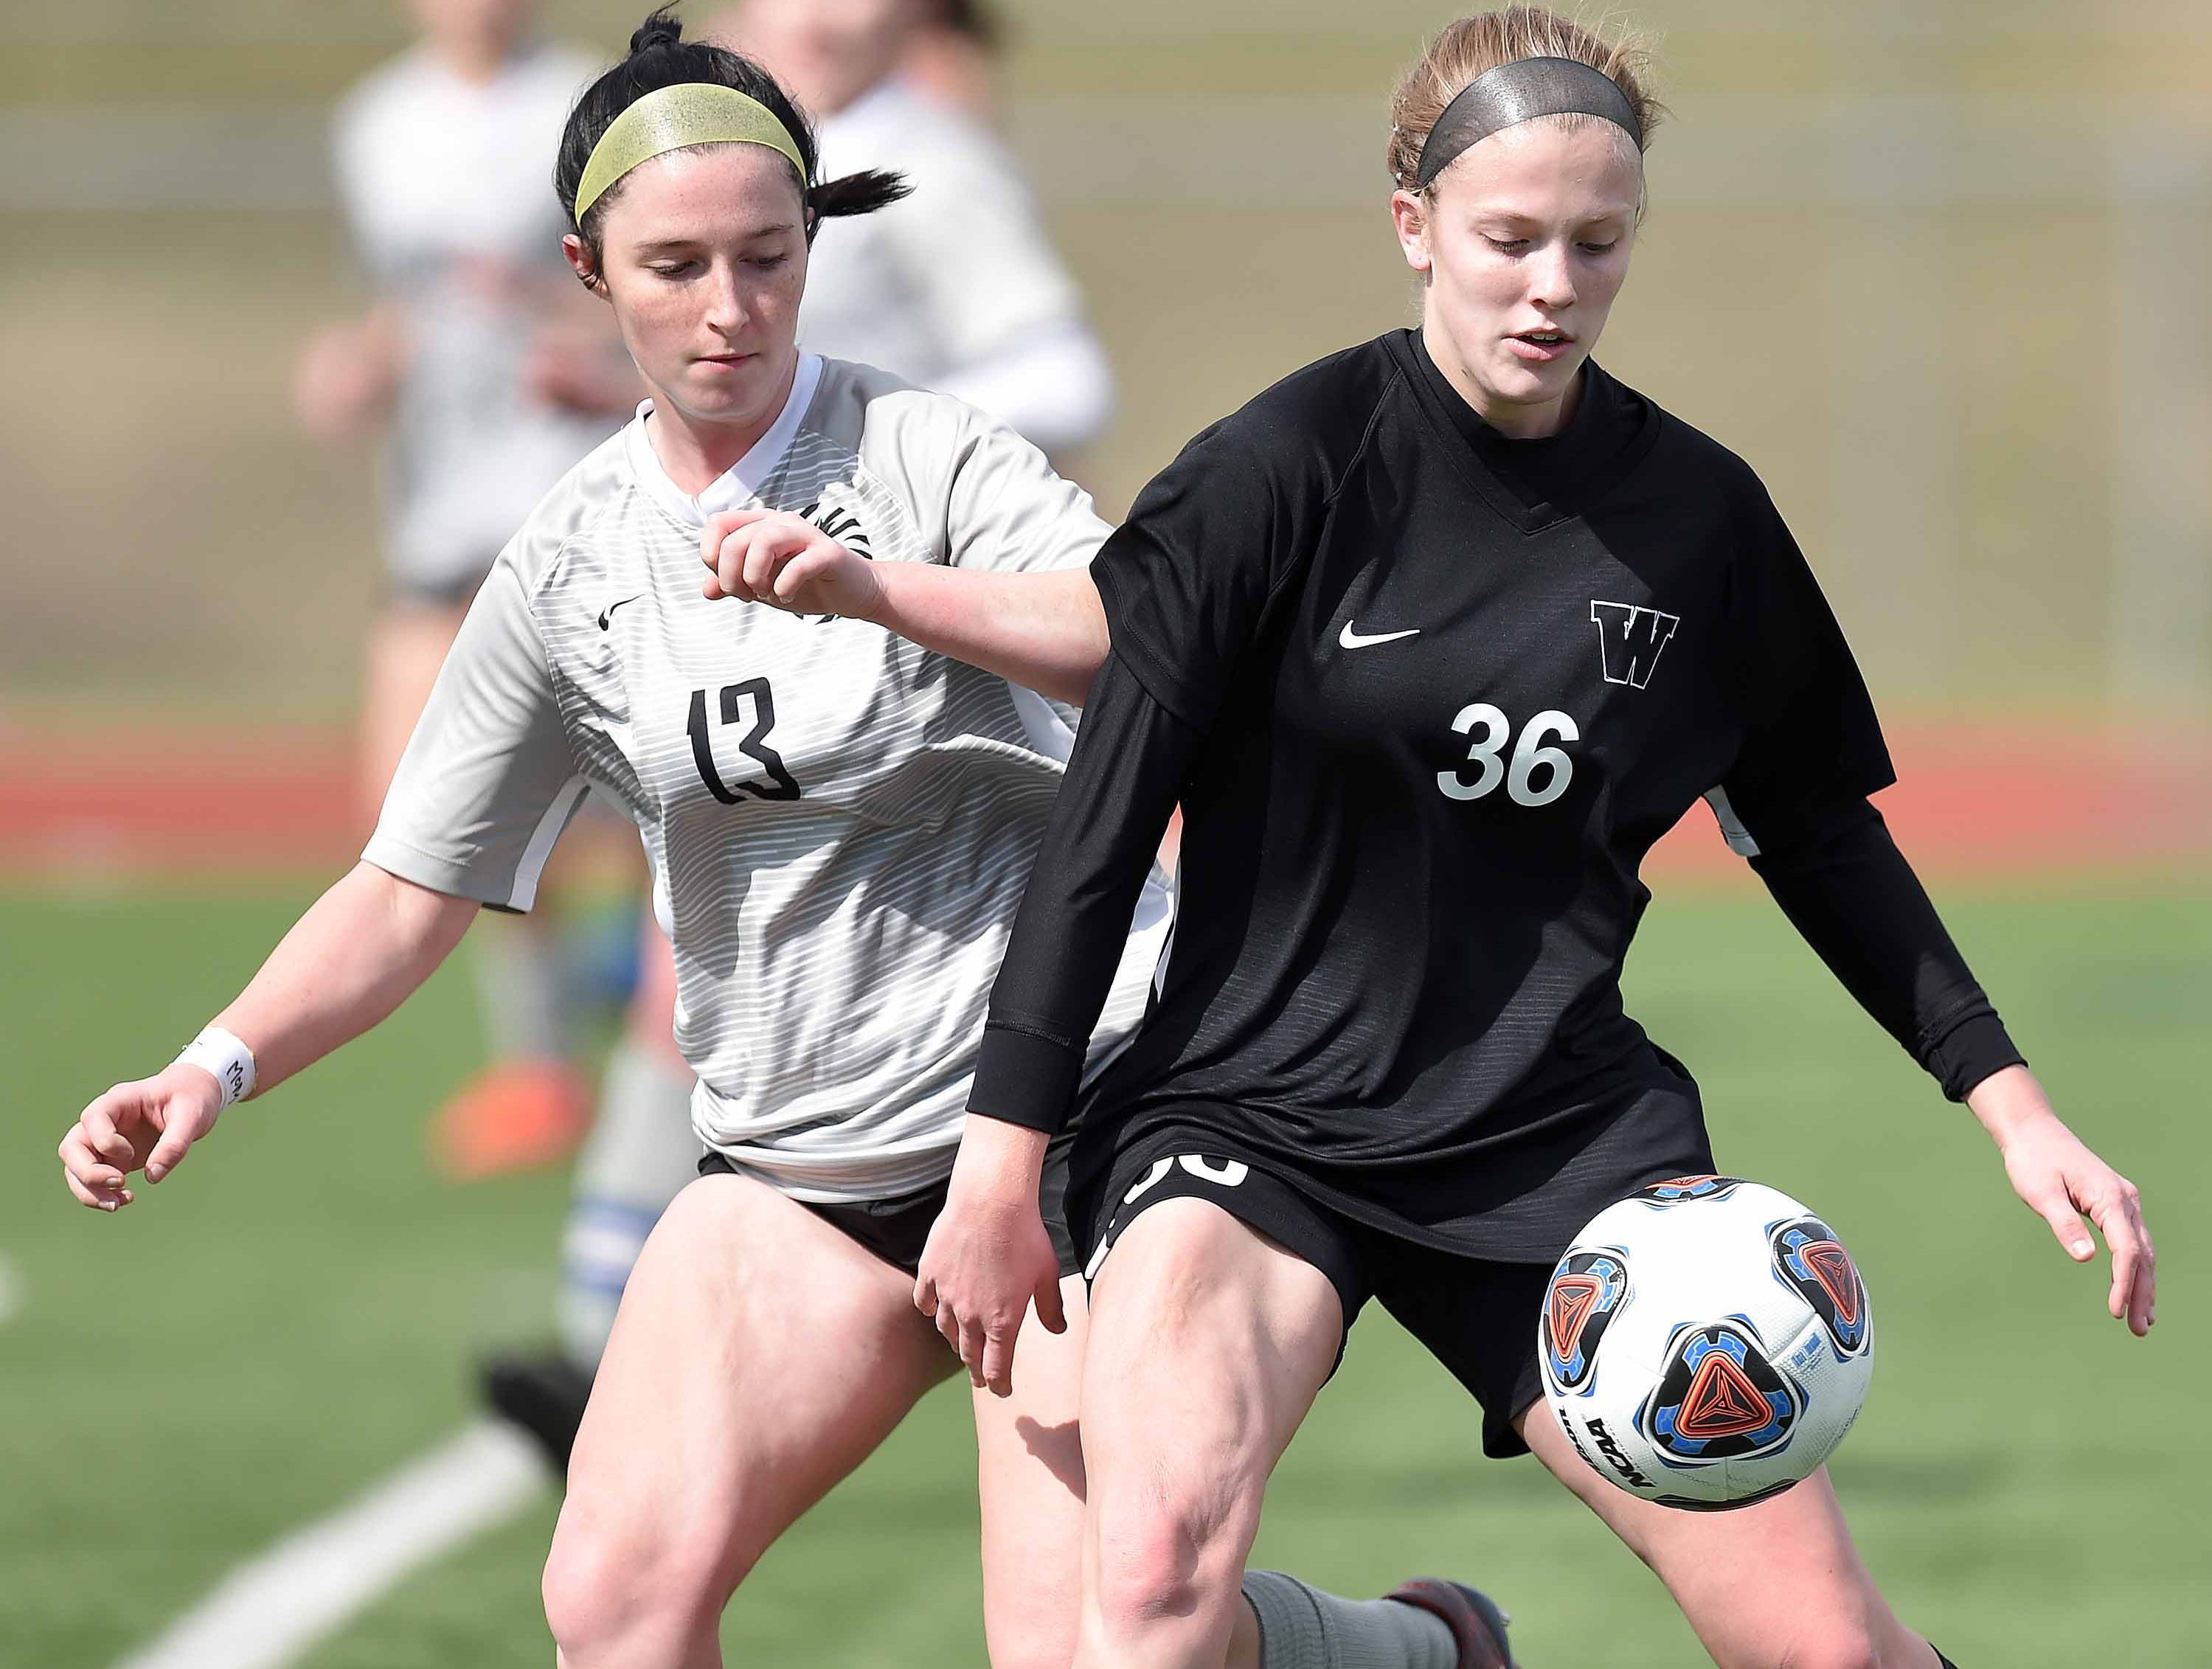 Florence's Grace Giglio (13) competes for the ball against West Lauderdale's Ember Temple (36) in the Class 4A state championship in the MHSAA BlueCross Blue Shield of Mississippi Soccer Classic on Saturday, February 9, 2019, at Ridgeland High School in Ridgeland, Miss.